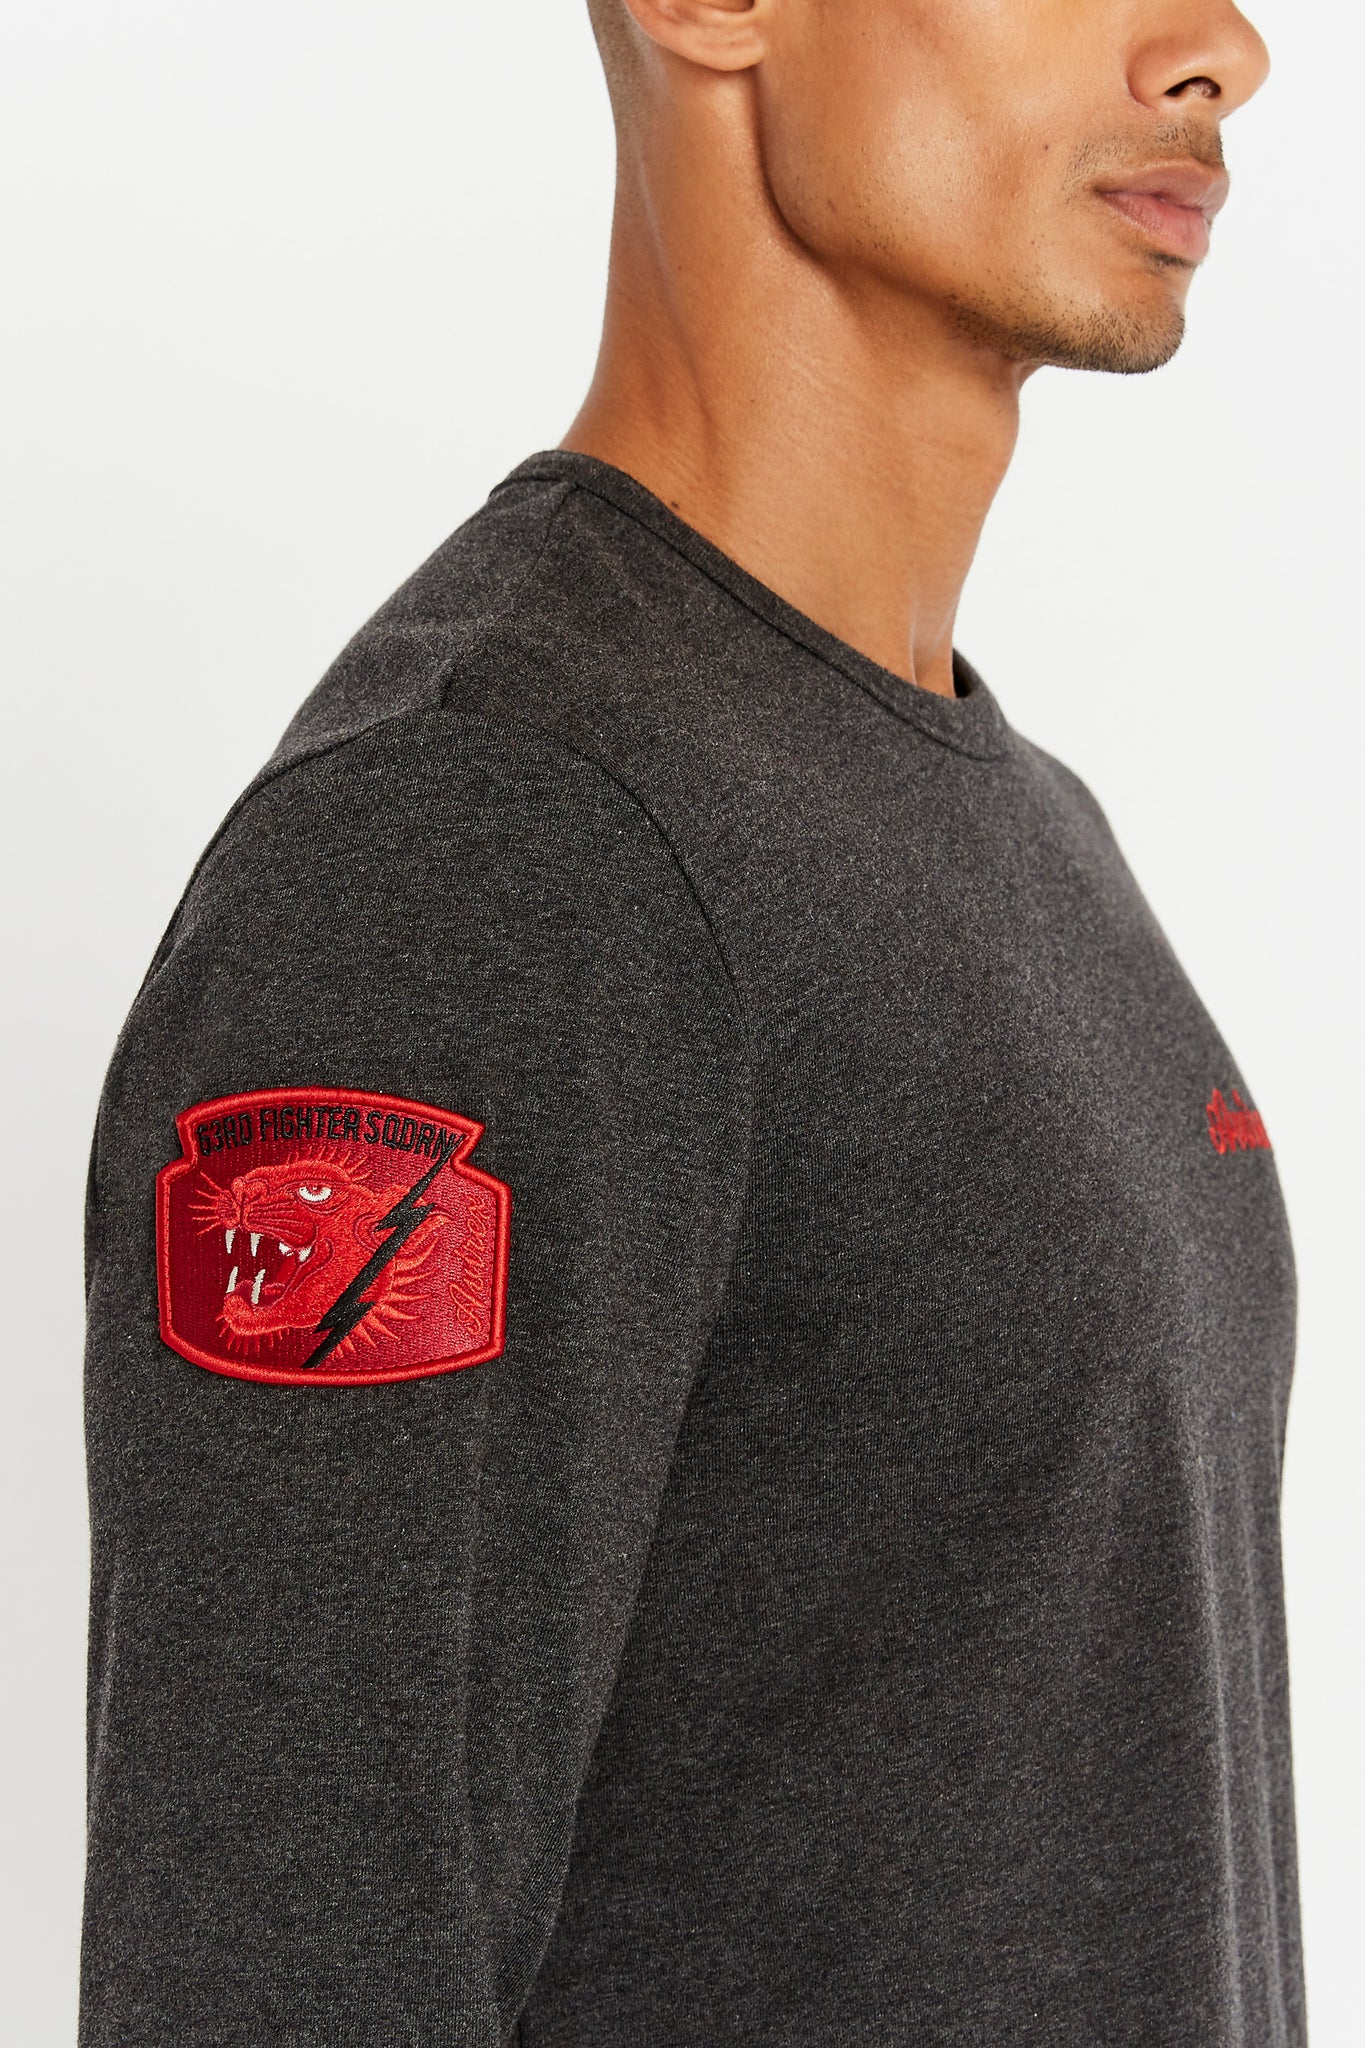 Detailed view of red patch on right sleeve